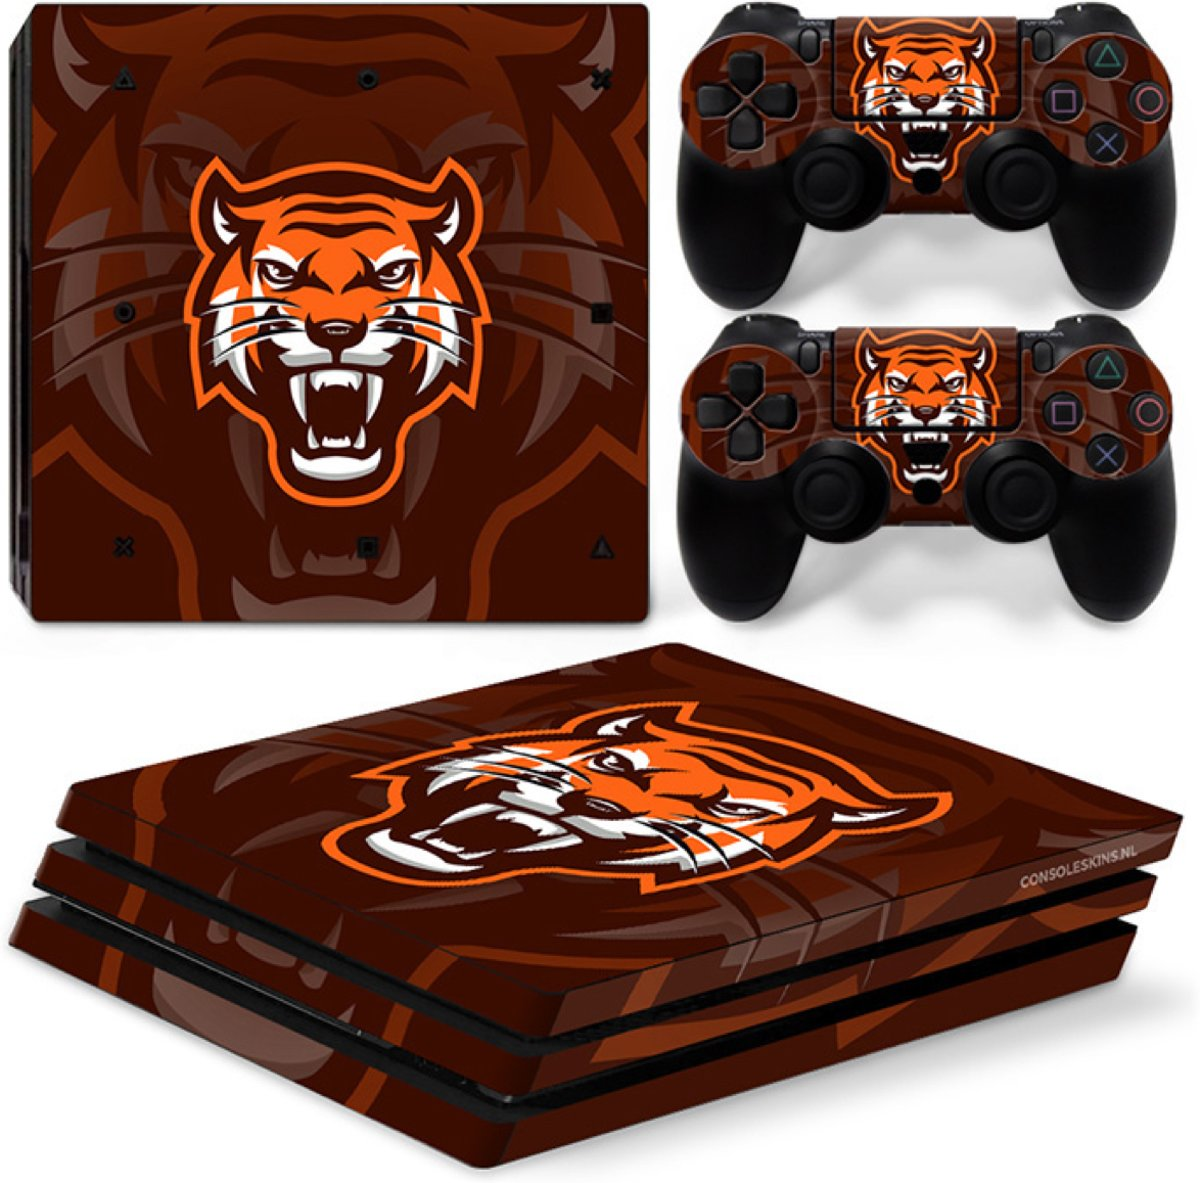 Gamer Tiger - PS4 Pro Console Skins PlayStation Stickers